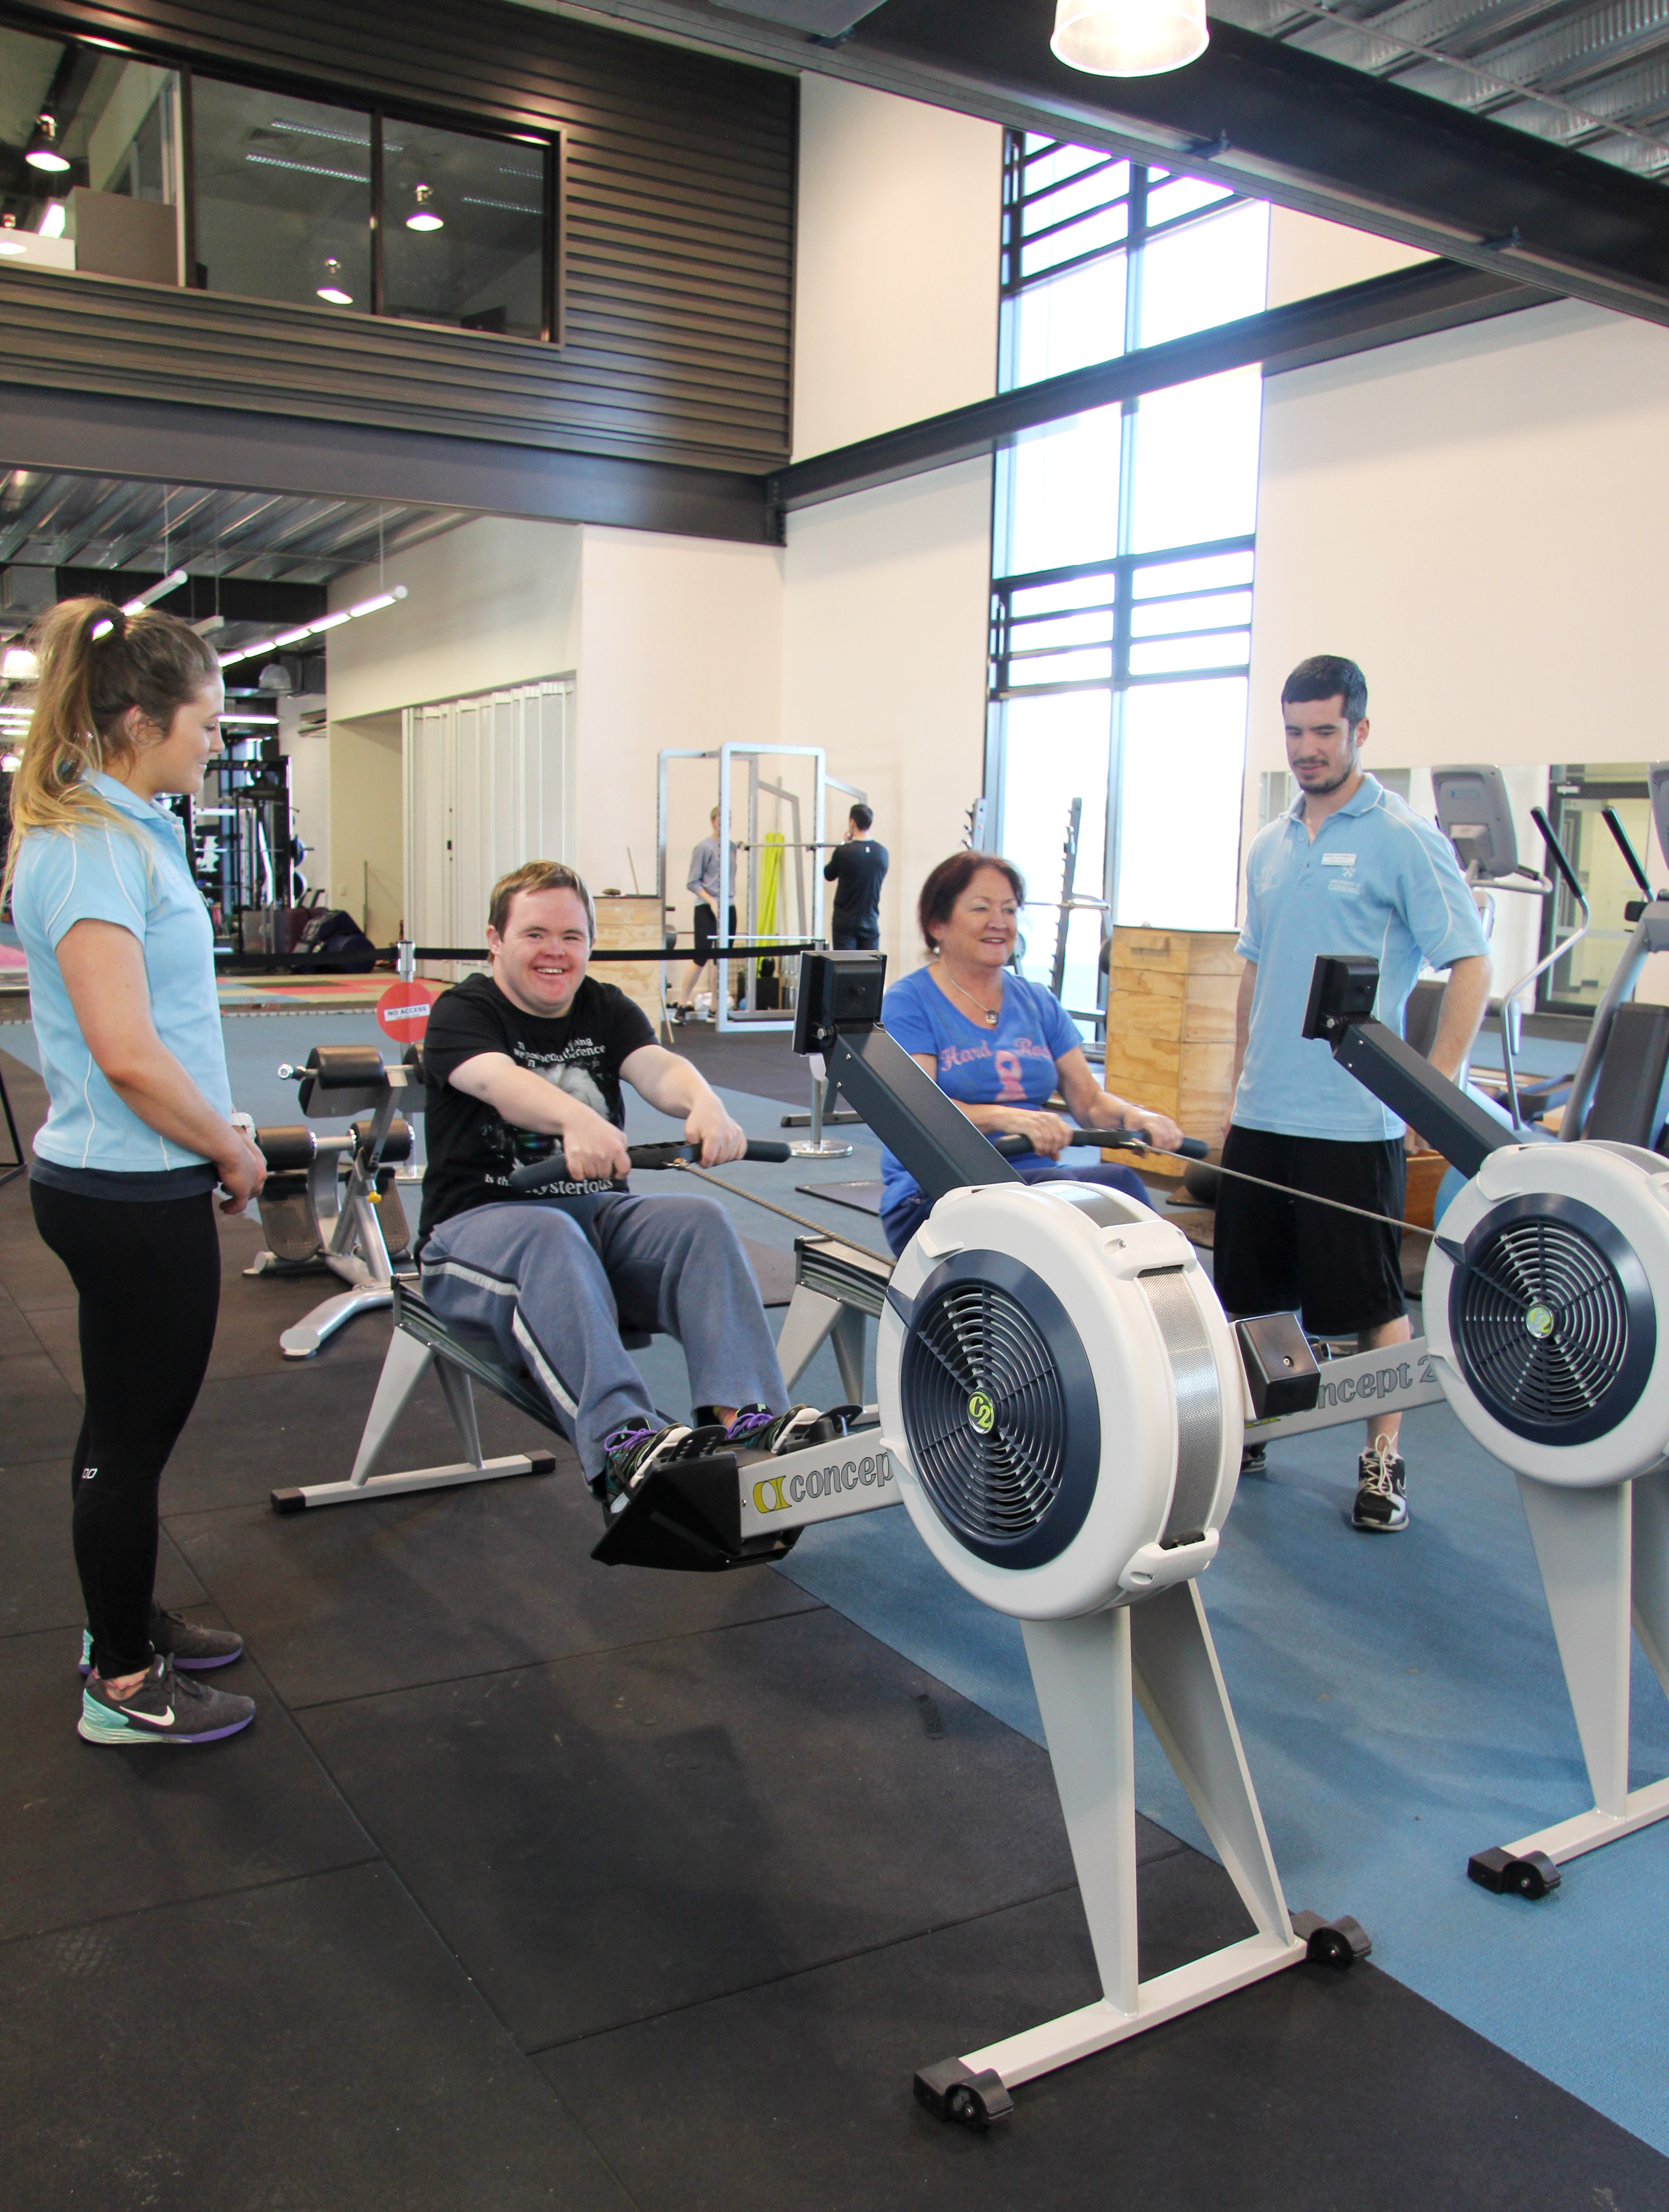 The mother and son enjoying using the rowing machines in the Sporting Commons under the guidance of the UC students